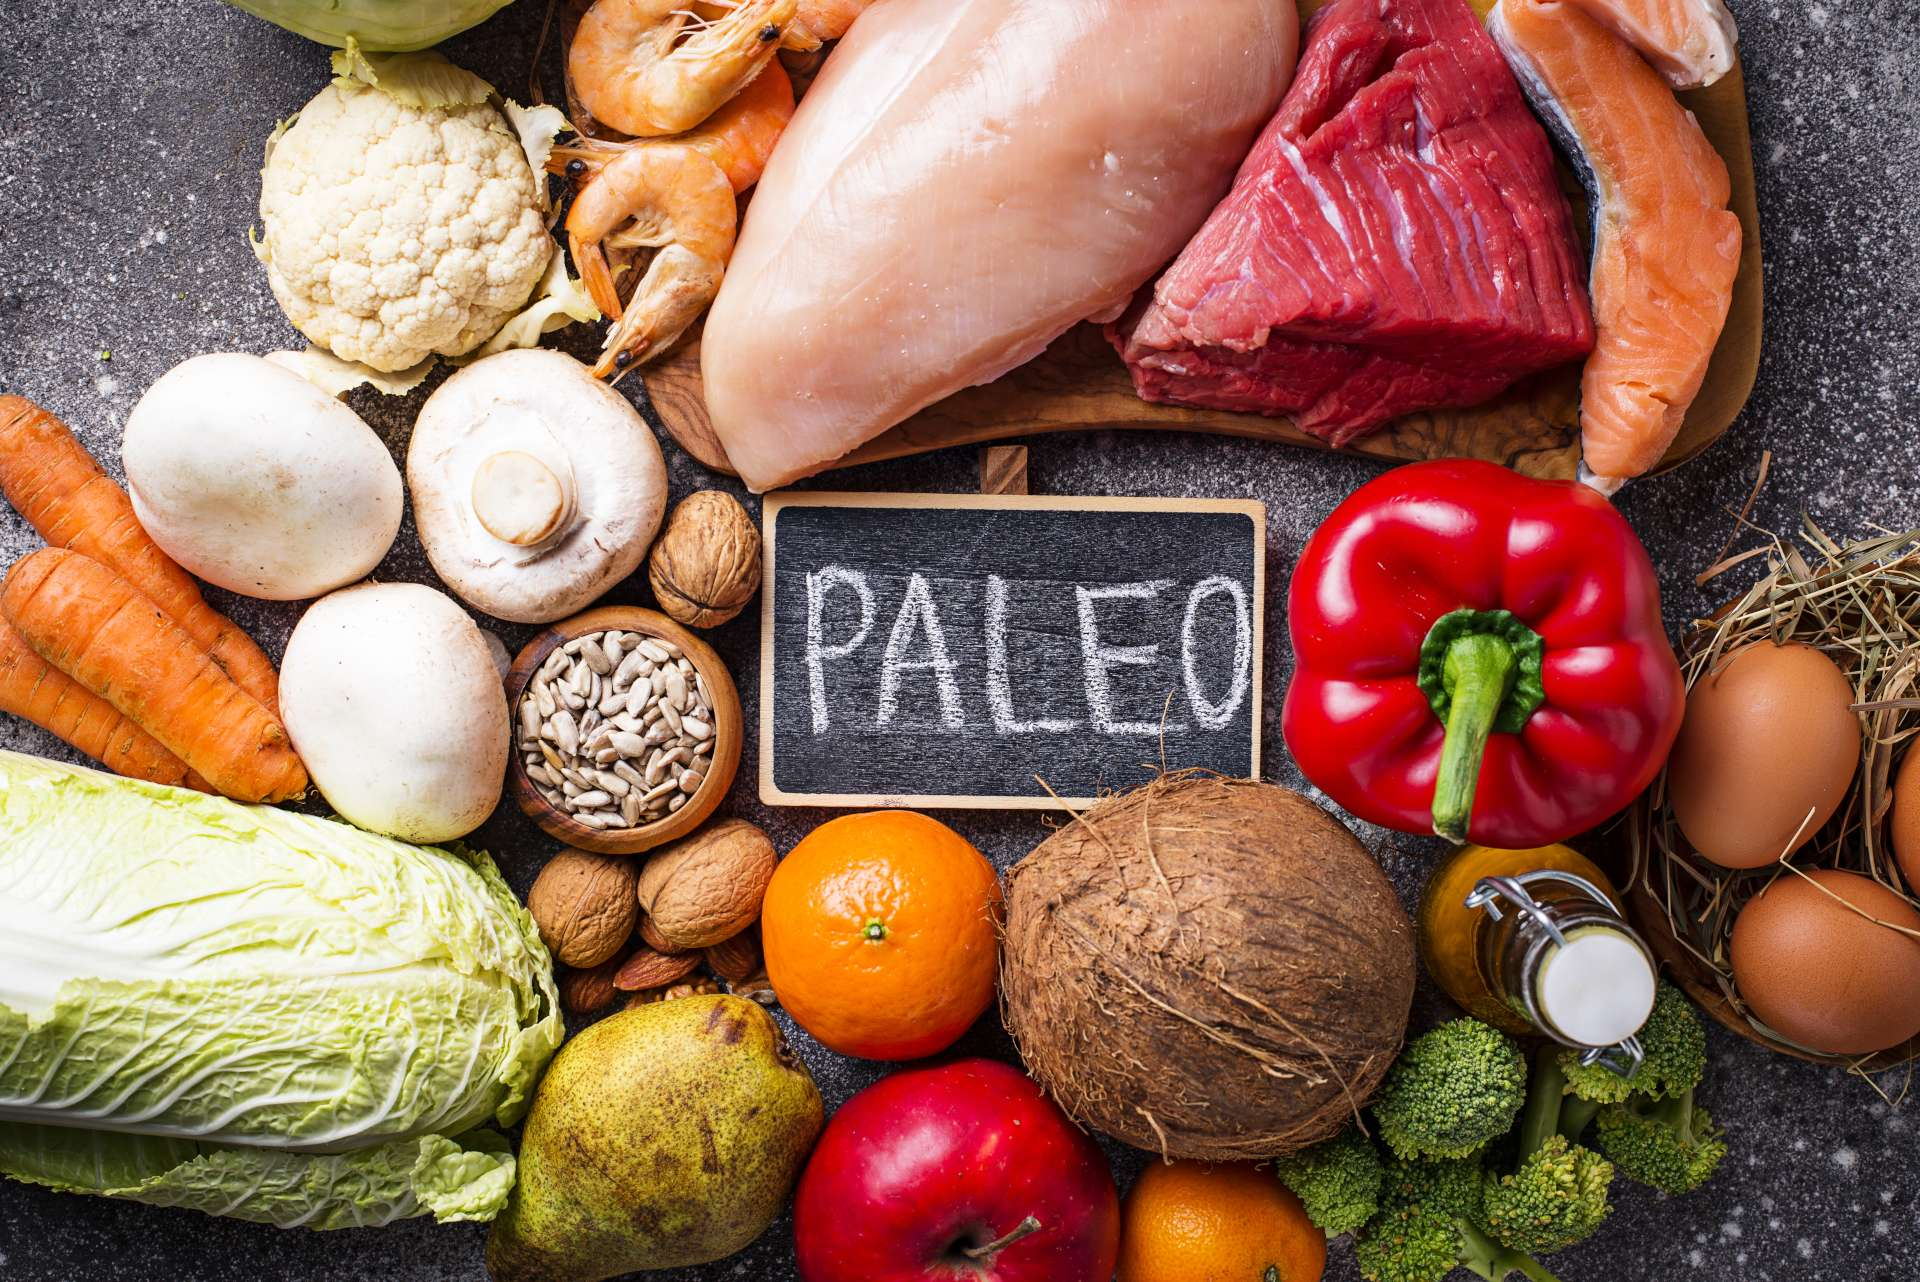 christianity and paleo diet